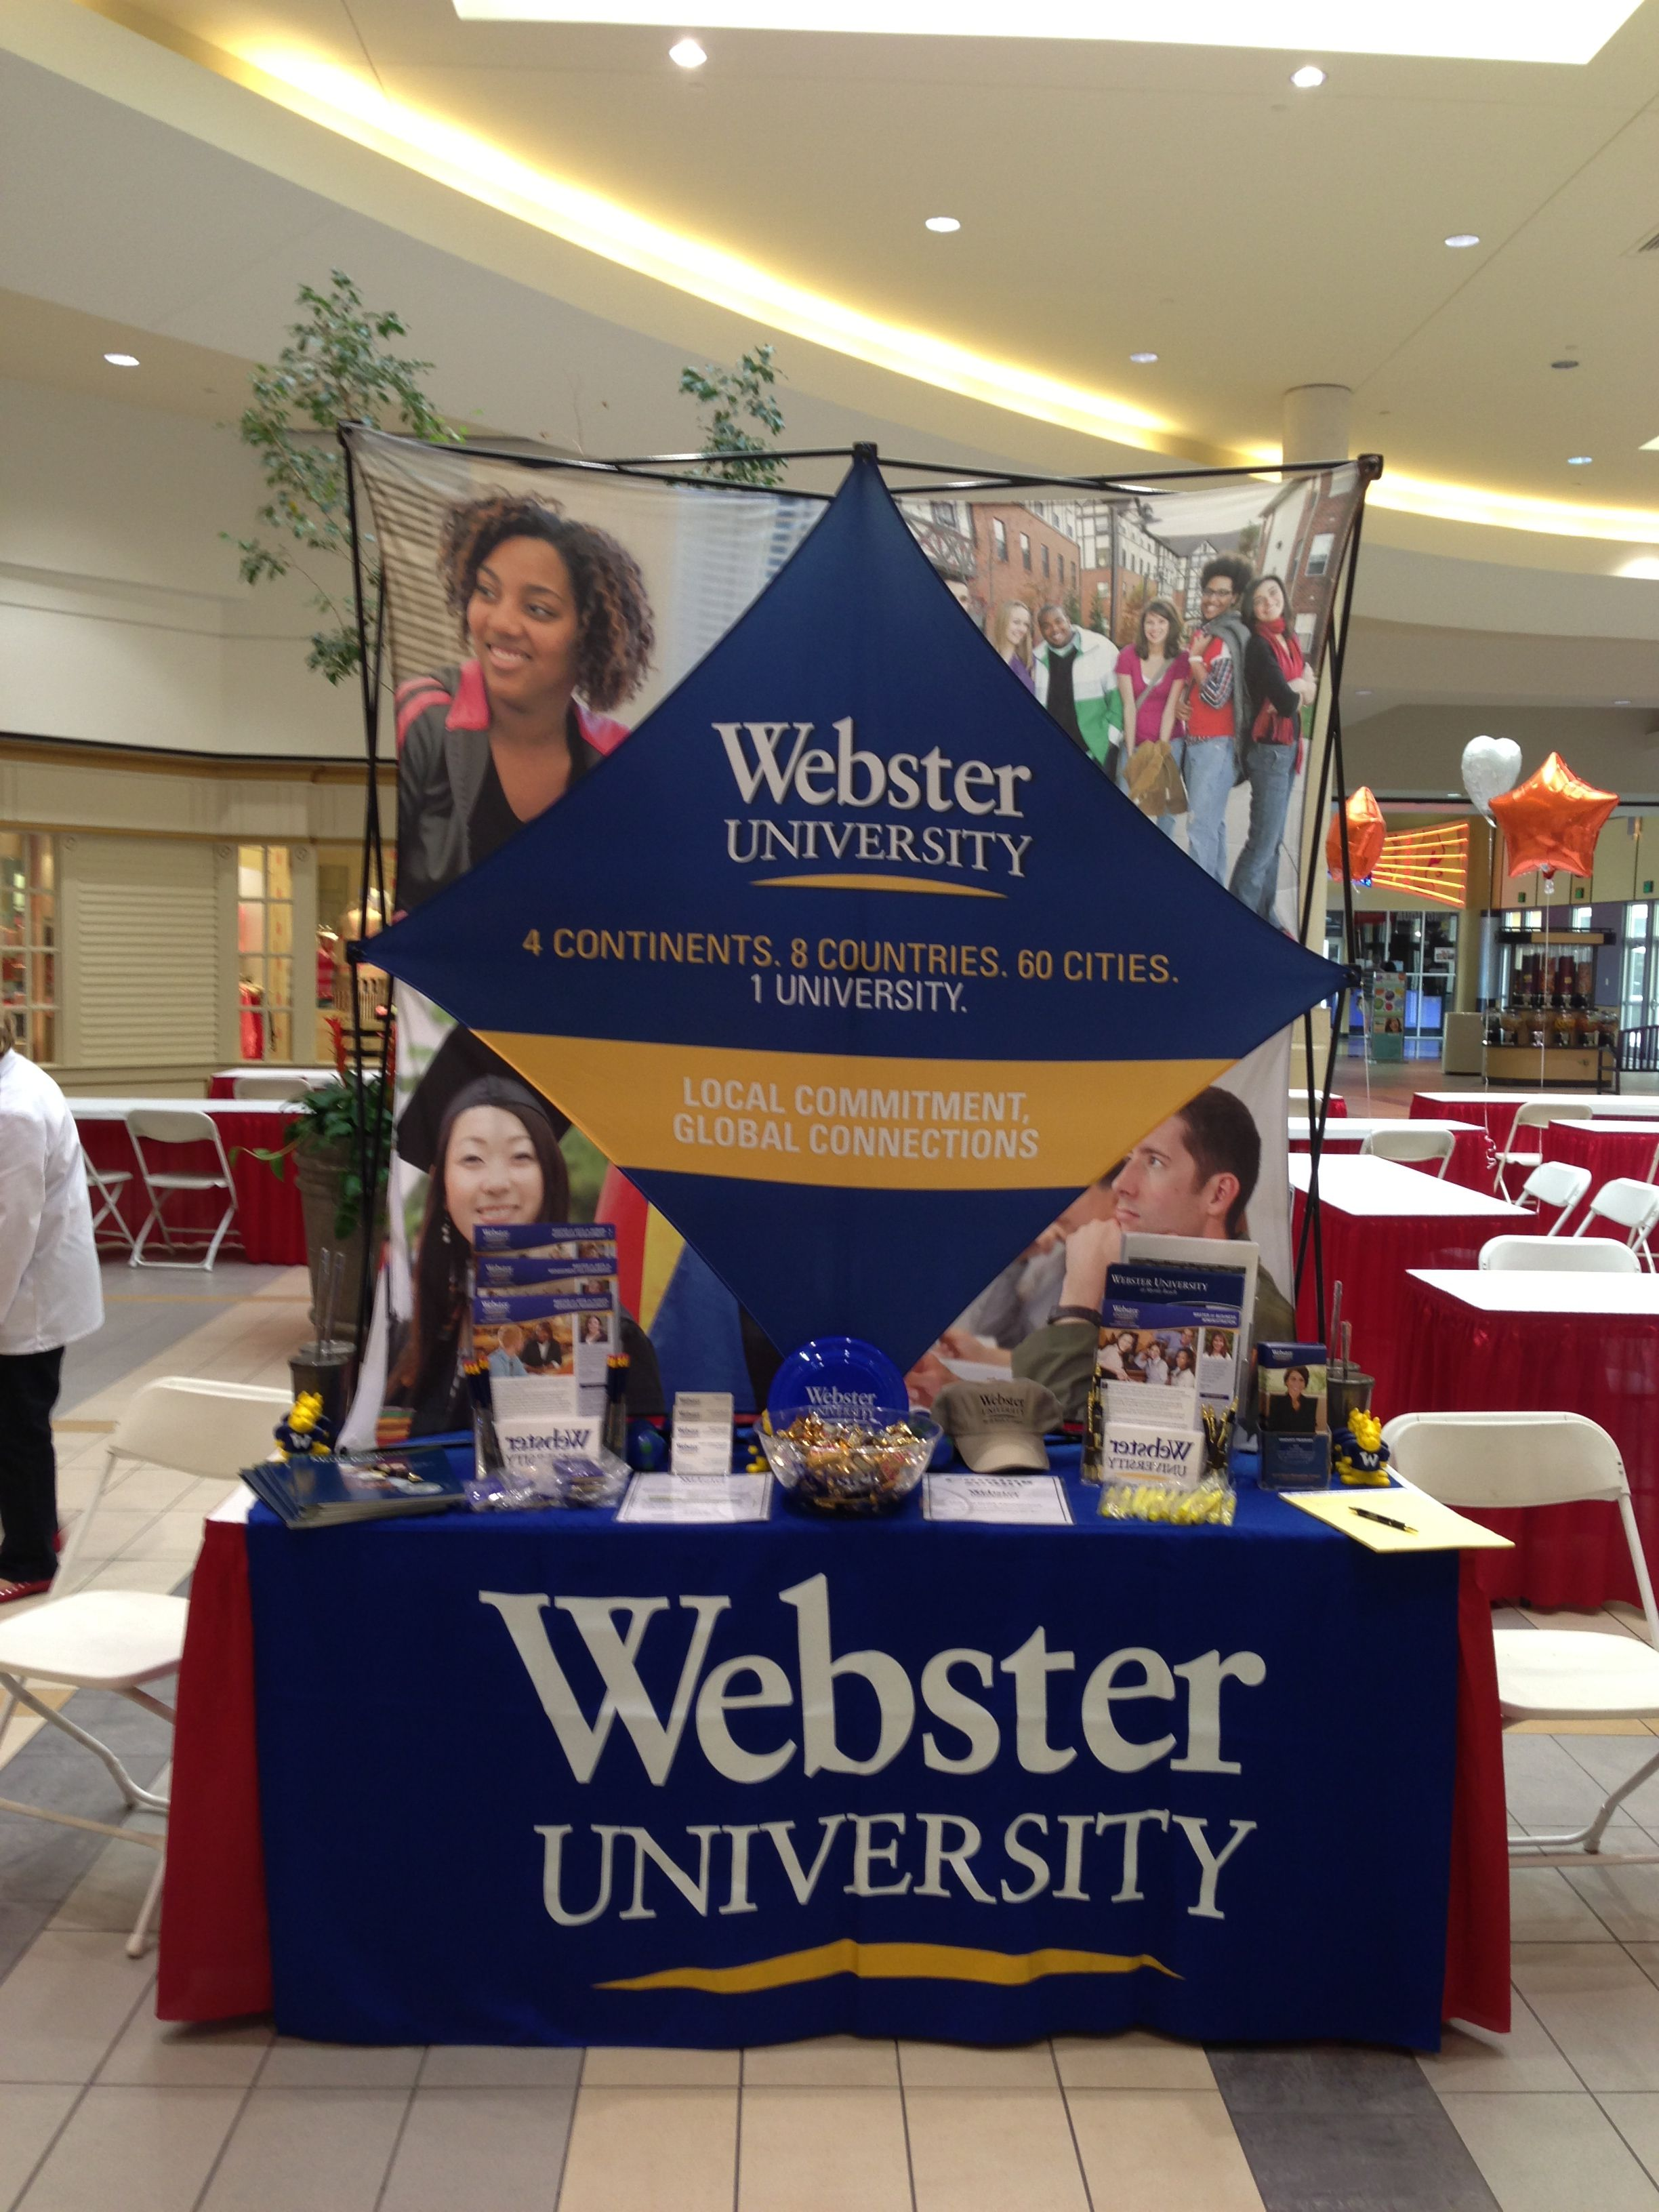 Display for Webster University (Myrtle Beach, SC) Campus in